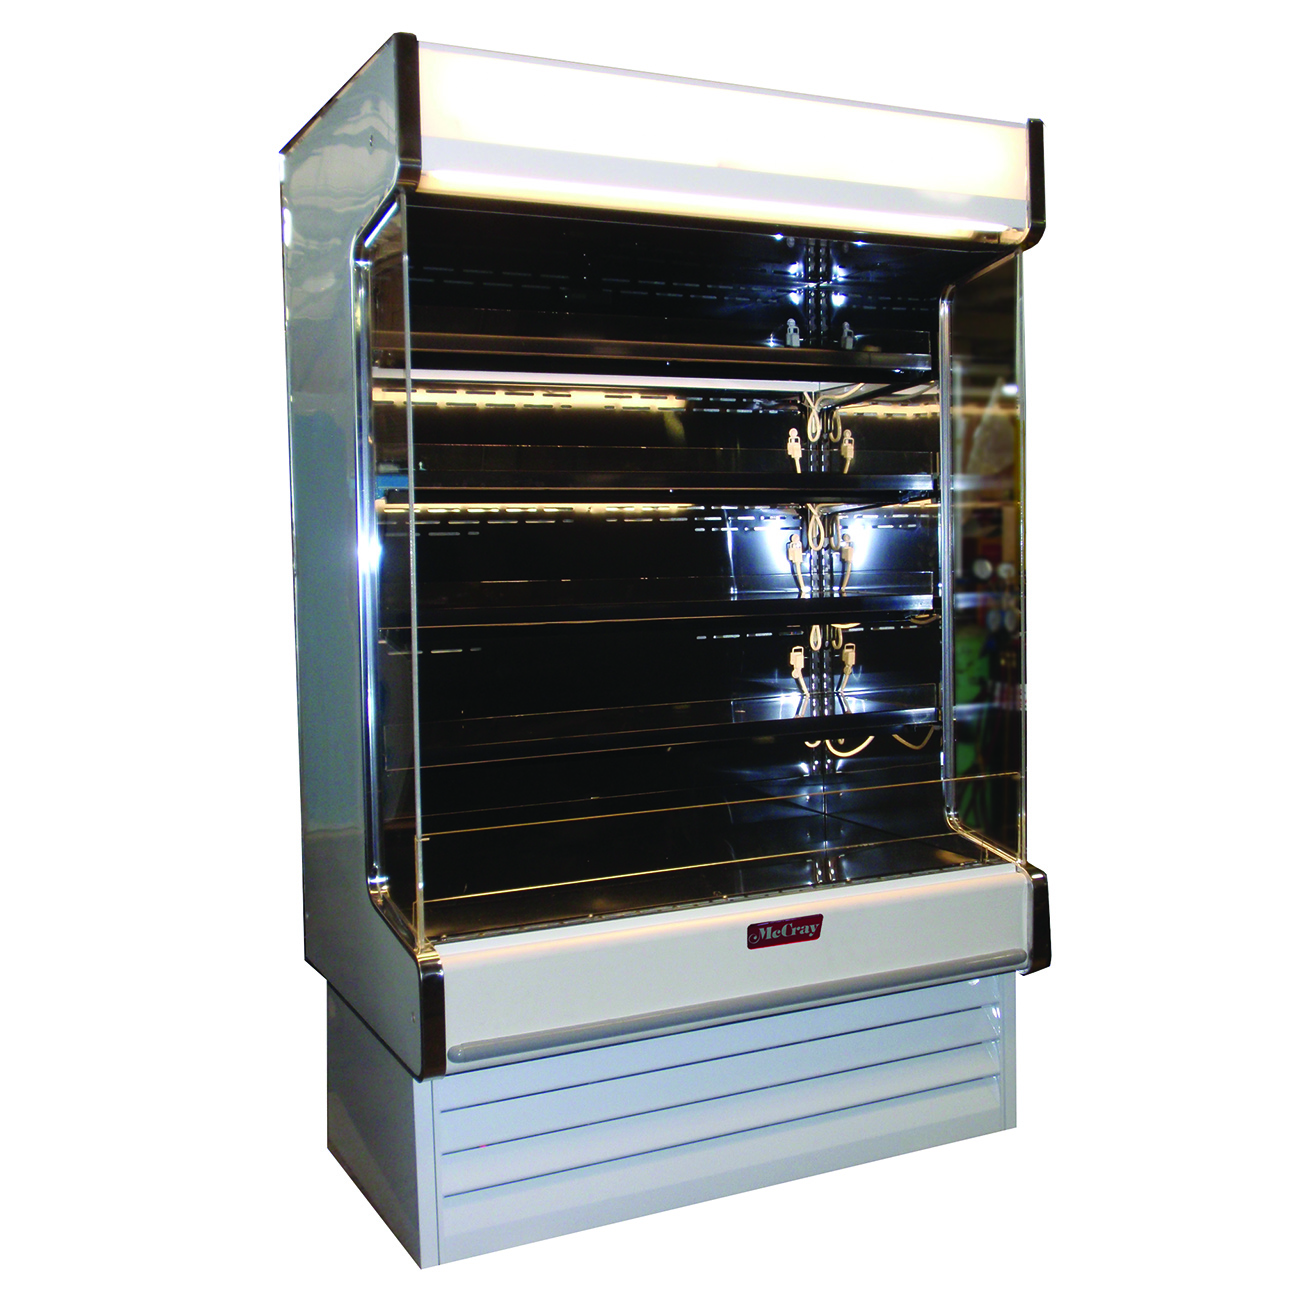 Howard-McCray SC-OD35E-6-S-LED-LC merchandiser, open refrigerated display